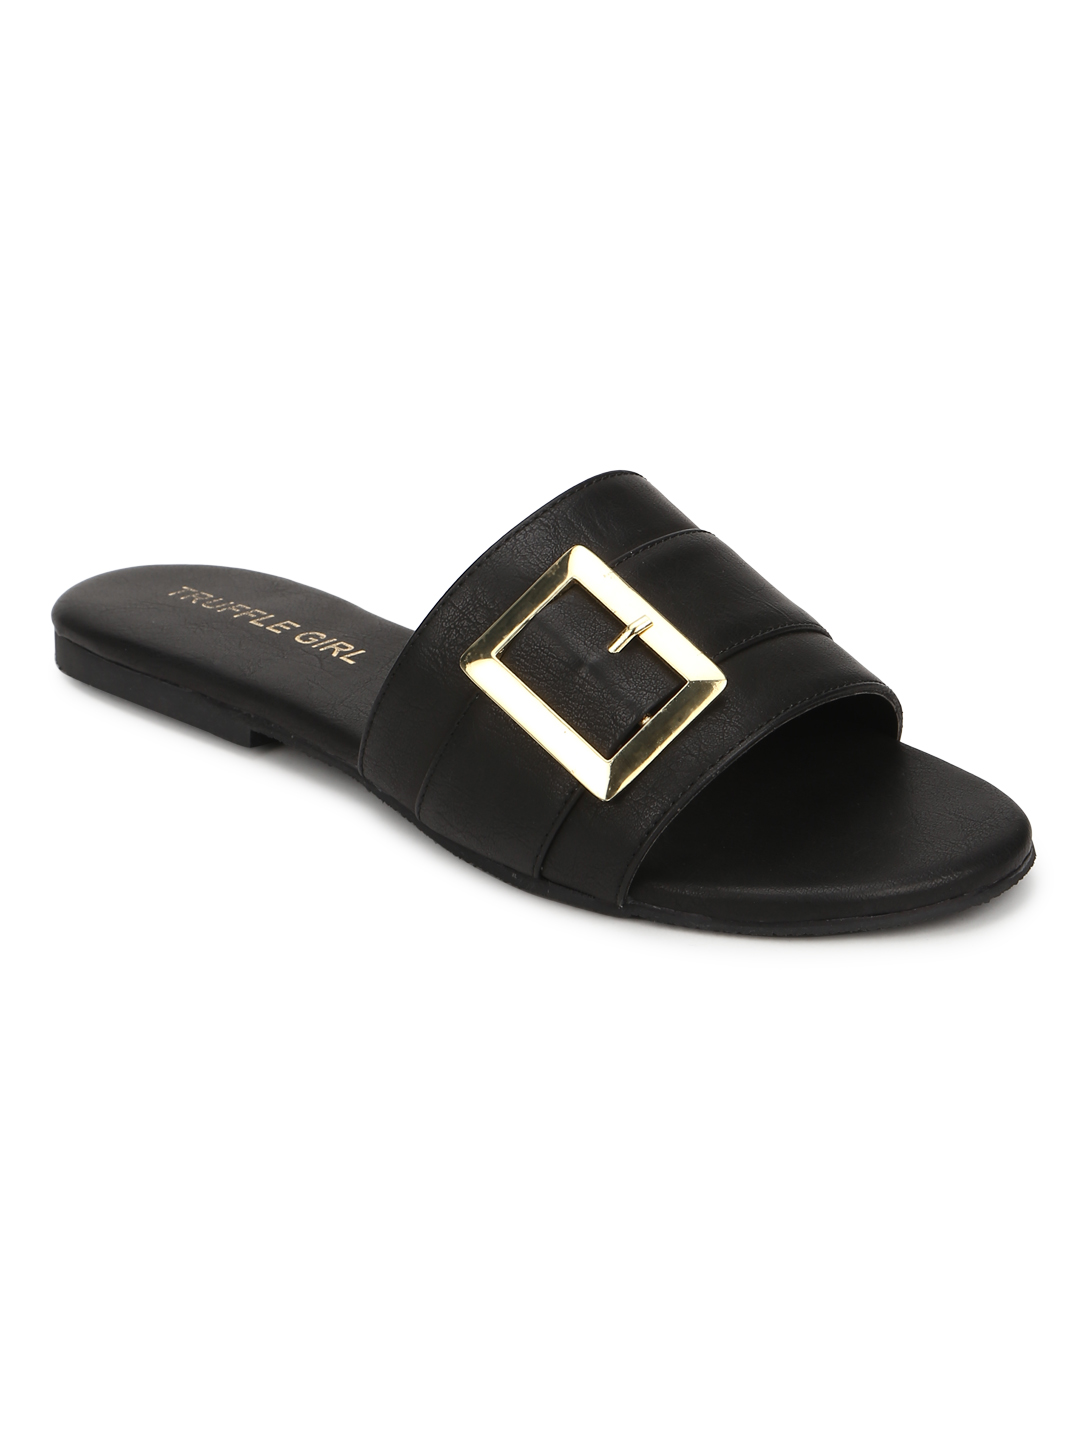 Truffle Collection | Truffle Collection Black PU Slide Buckle Slip Ons